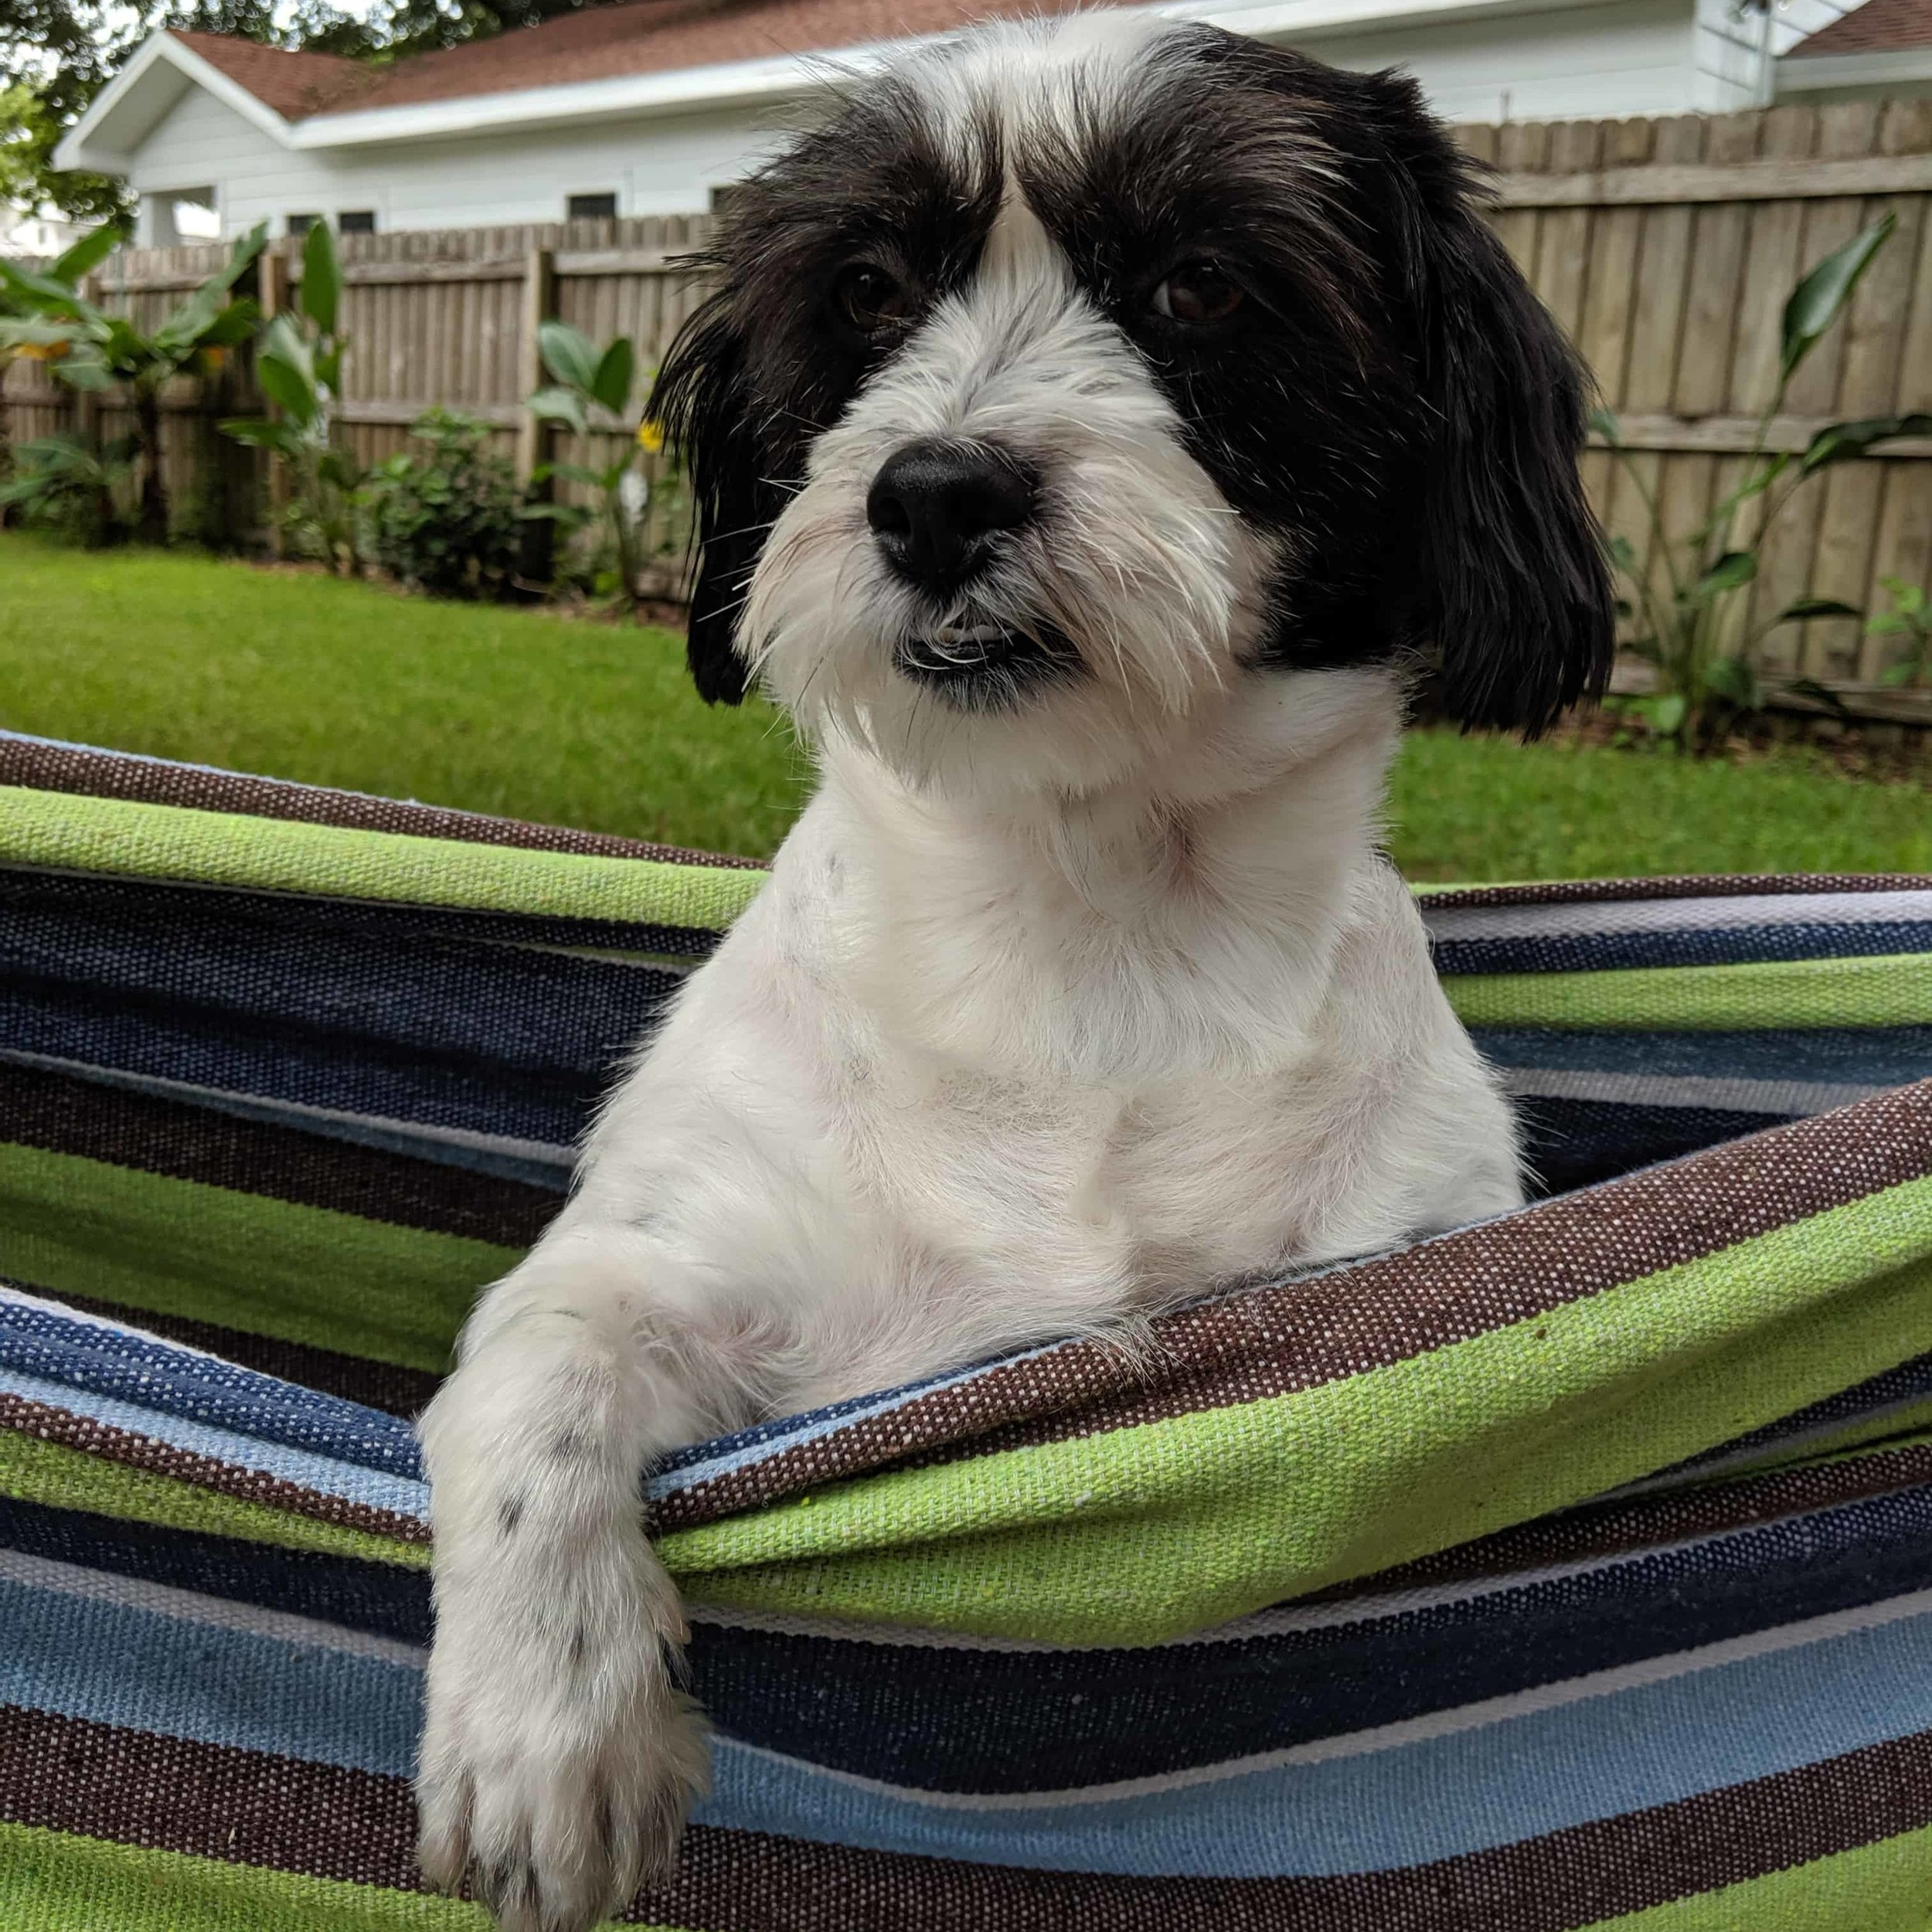 Penny, director of barketing - Penny joined the team in 2016. She raises team morale and manages to work snuggles into every work day. An out of the box thinker, she's been known take a bite out of any new office plants. Her best work happens in the hammock.